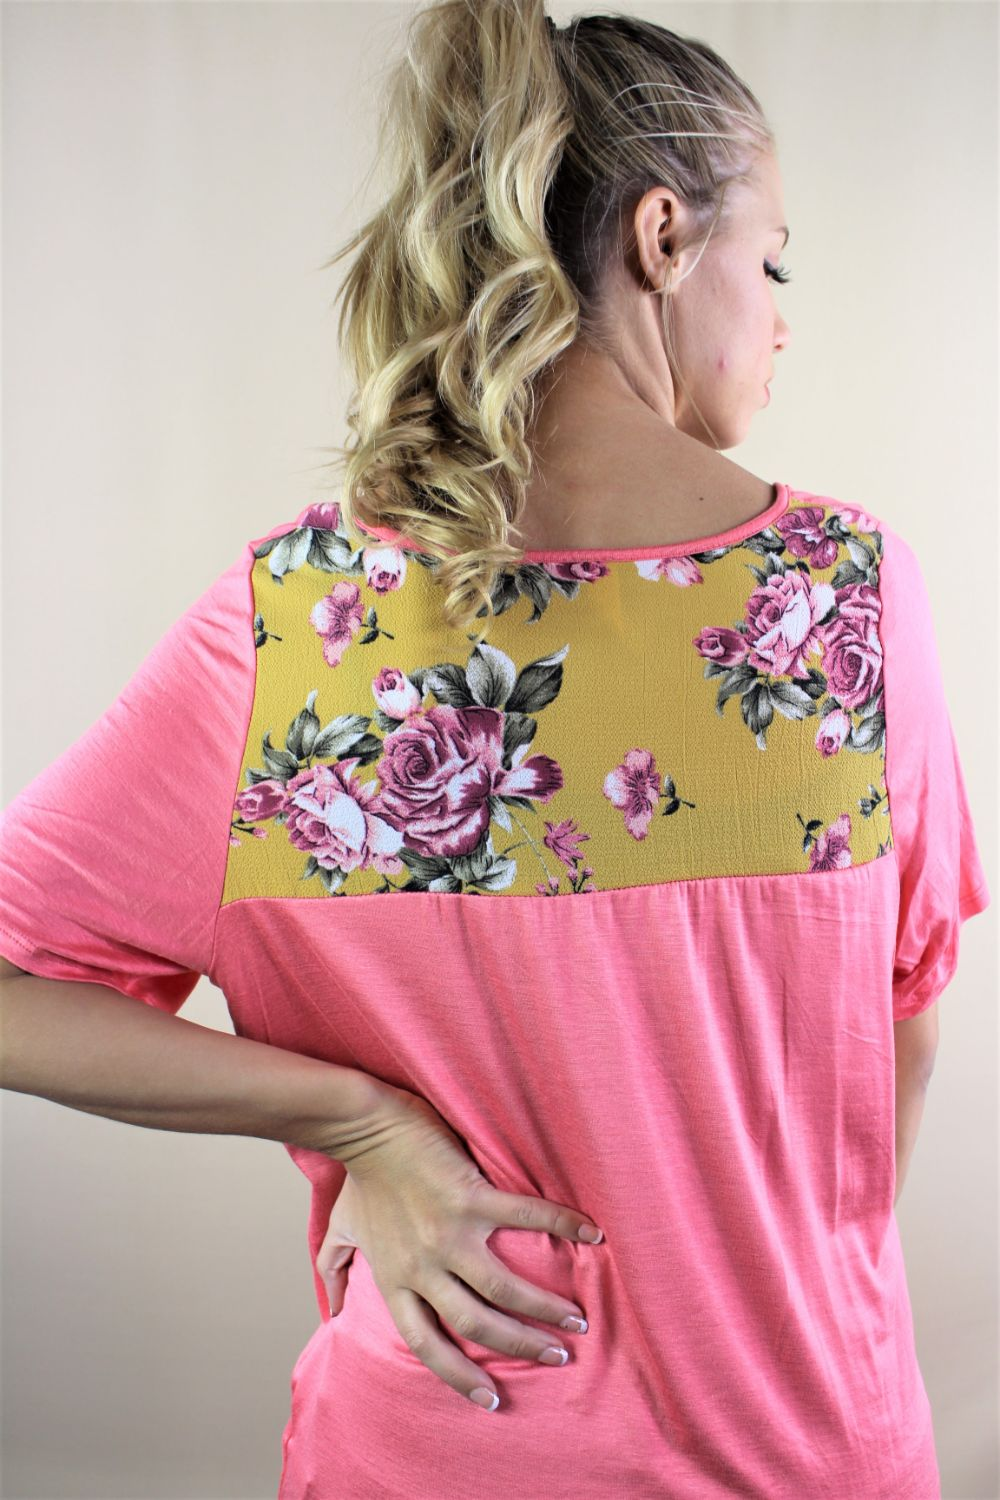 Women's Loose Fit Tee with Floral Back Design